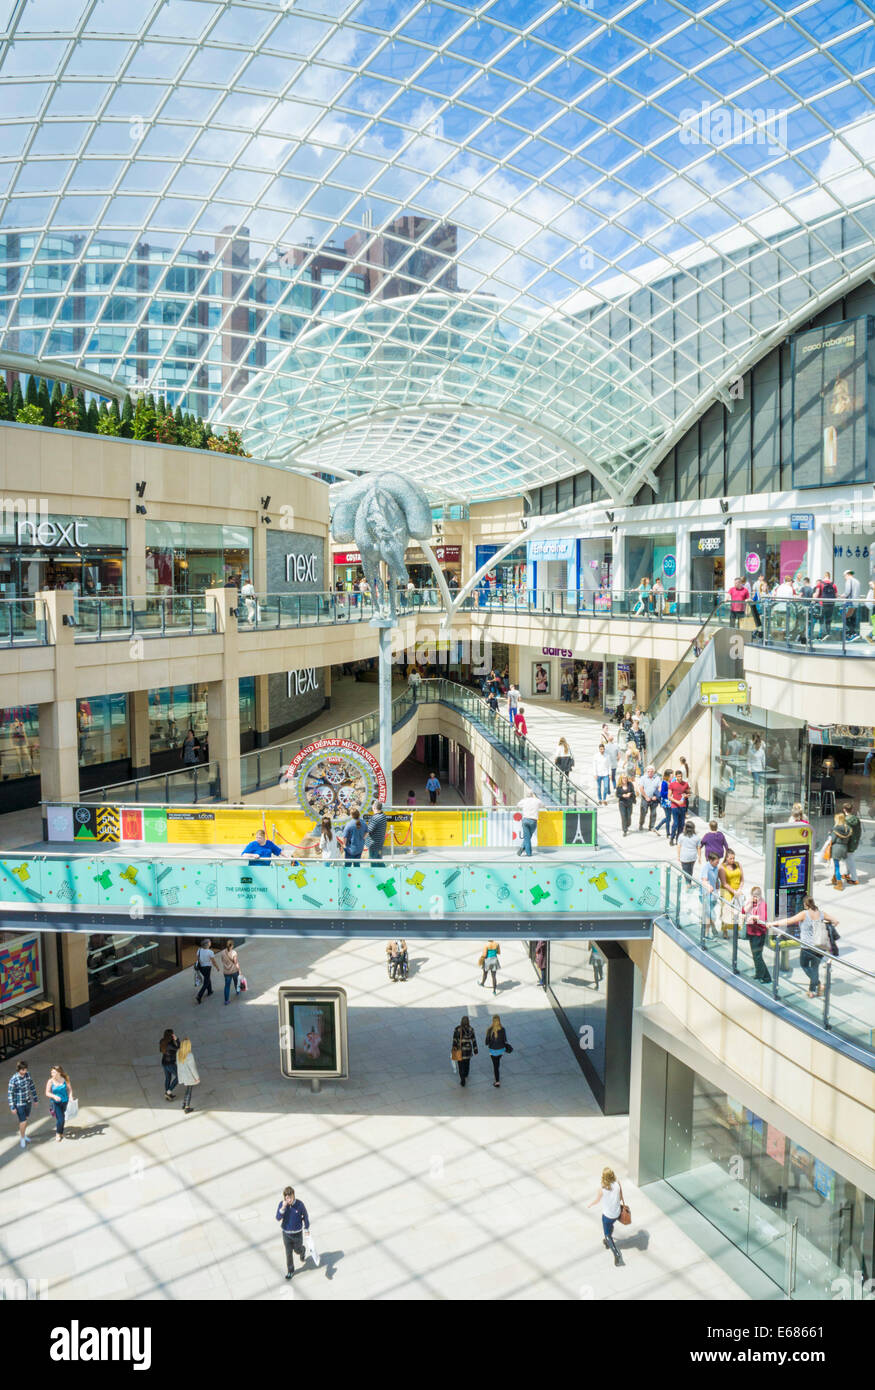 Trinity Leeds Shopping Centre Leeds West Yorkshire England UK GB EU Europe - Stock Image